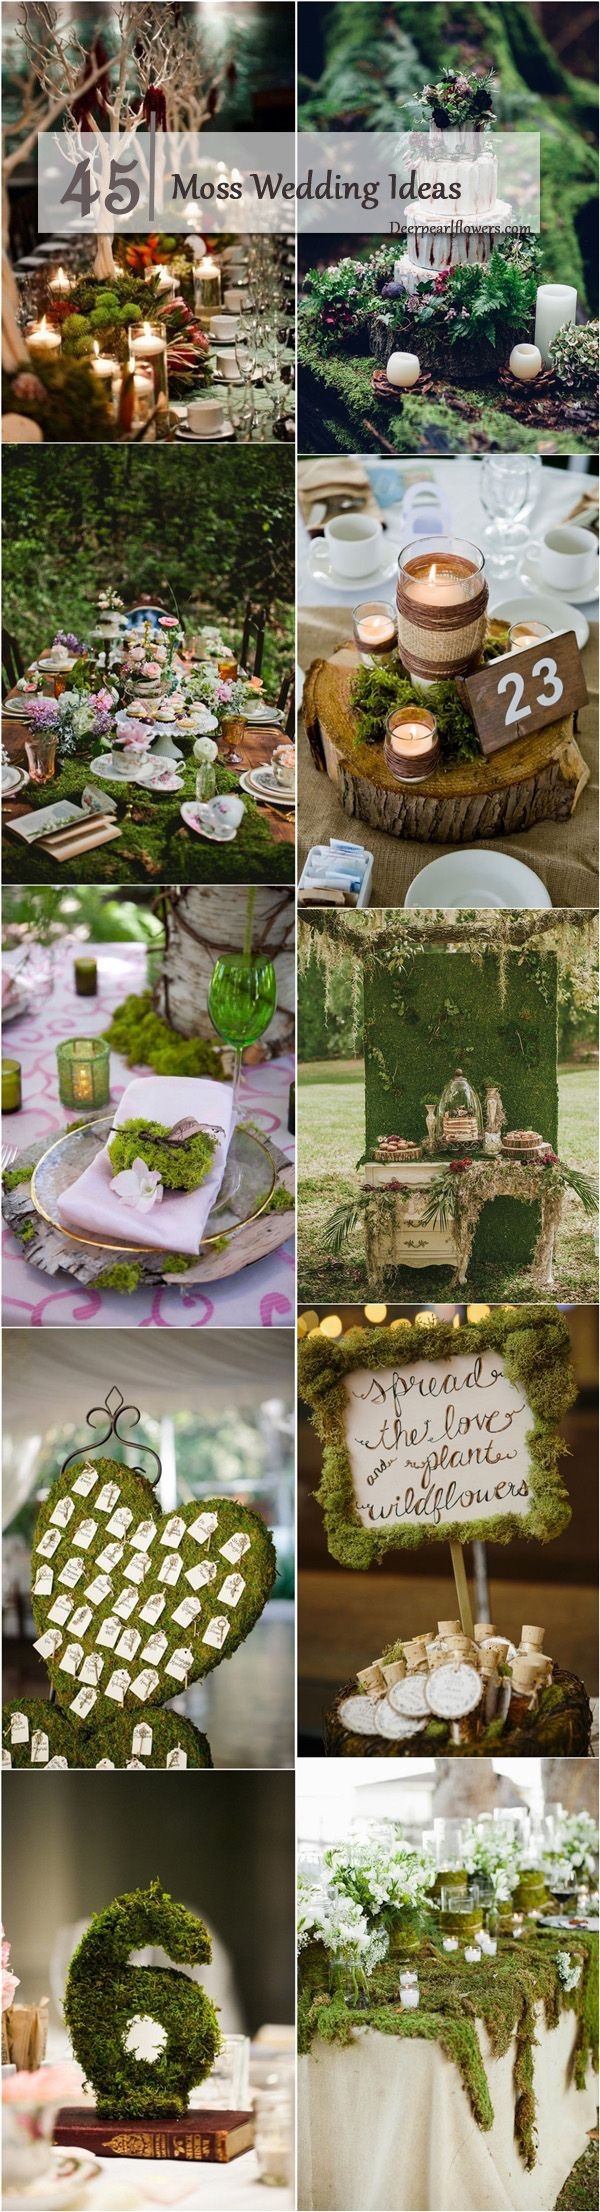 rustic moss wedding ideas / http://www.deerpearlflowers.com/moss-decor-ideas-for-a-nature-wedding/3/